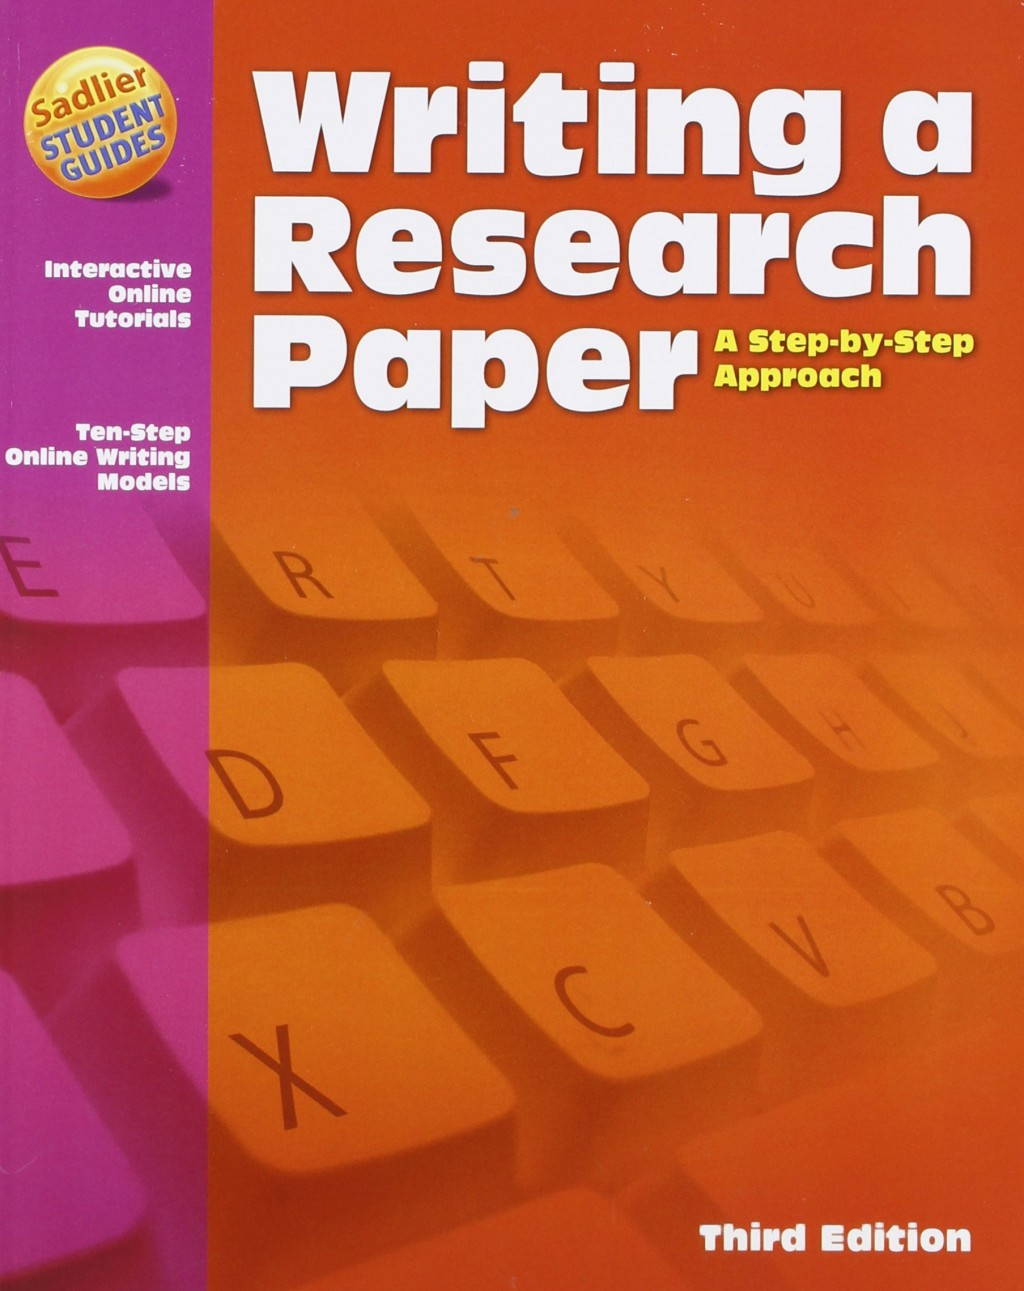 010 81uqfpthpml Research Paper Steps To Writing Fearsome A In Apa Format Mla Style Large